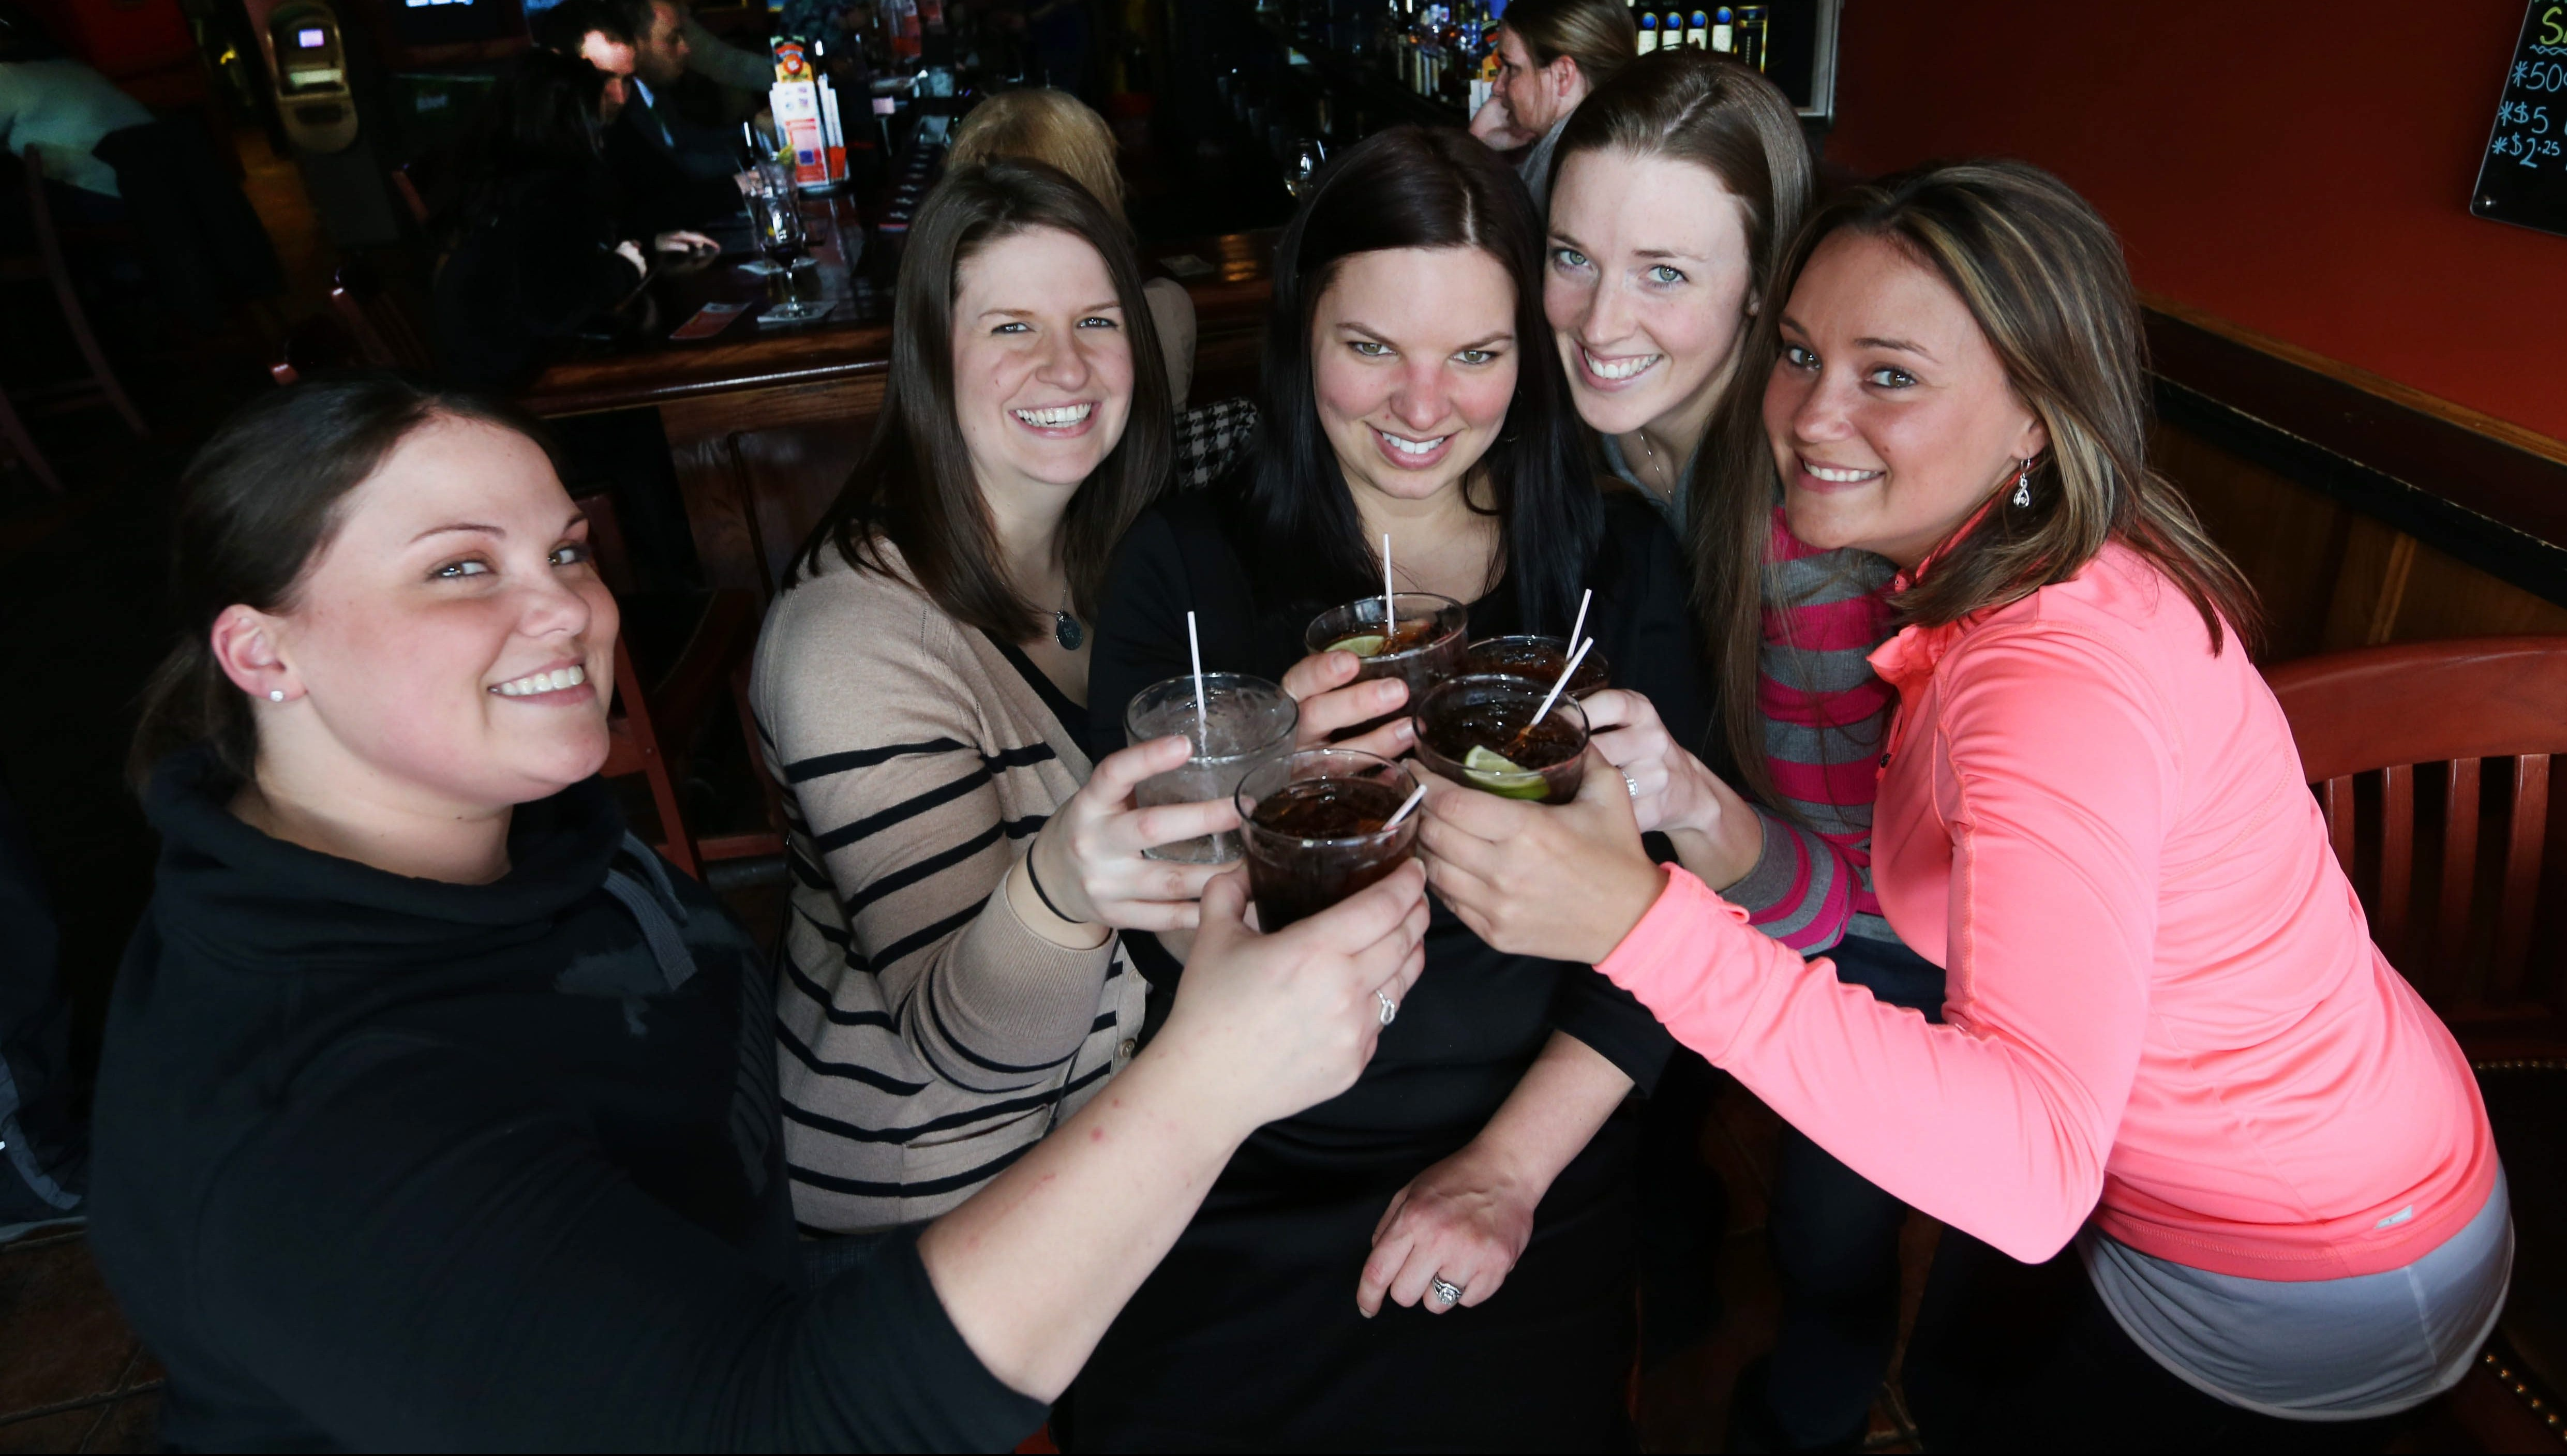 From left, Nicole Clare, Amy Goerss, Kristen Intihar, Shannan Zimmerman and Jackie Clare gather at the Rusty Buffalo to celebrate Intihar's birthday. To see more photos, visit buffalonews.com. (Photos by Sharon Cantillon/Buffalo News)